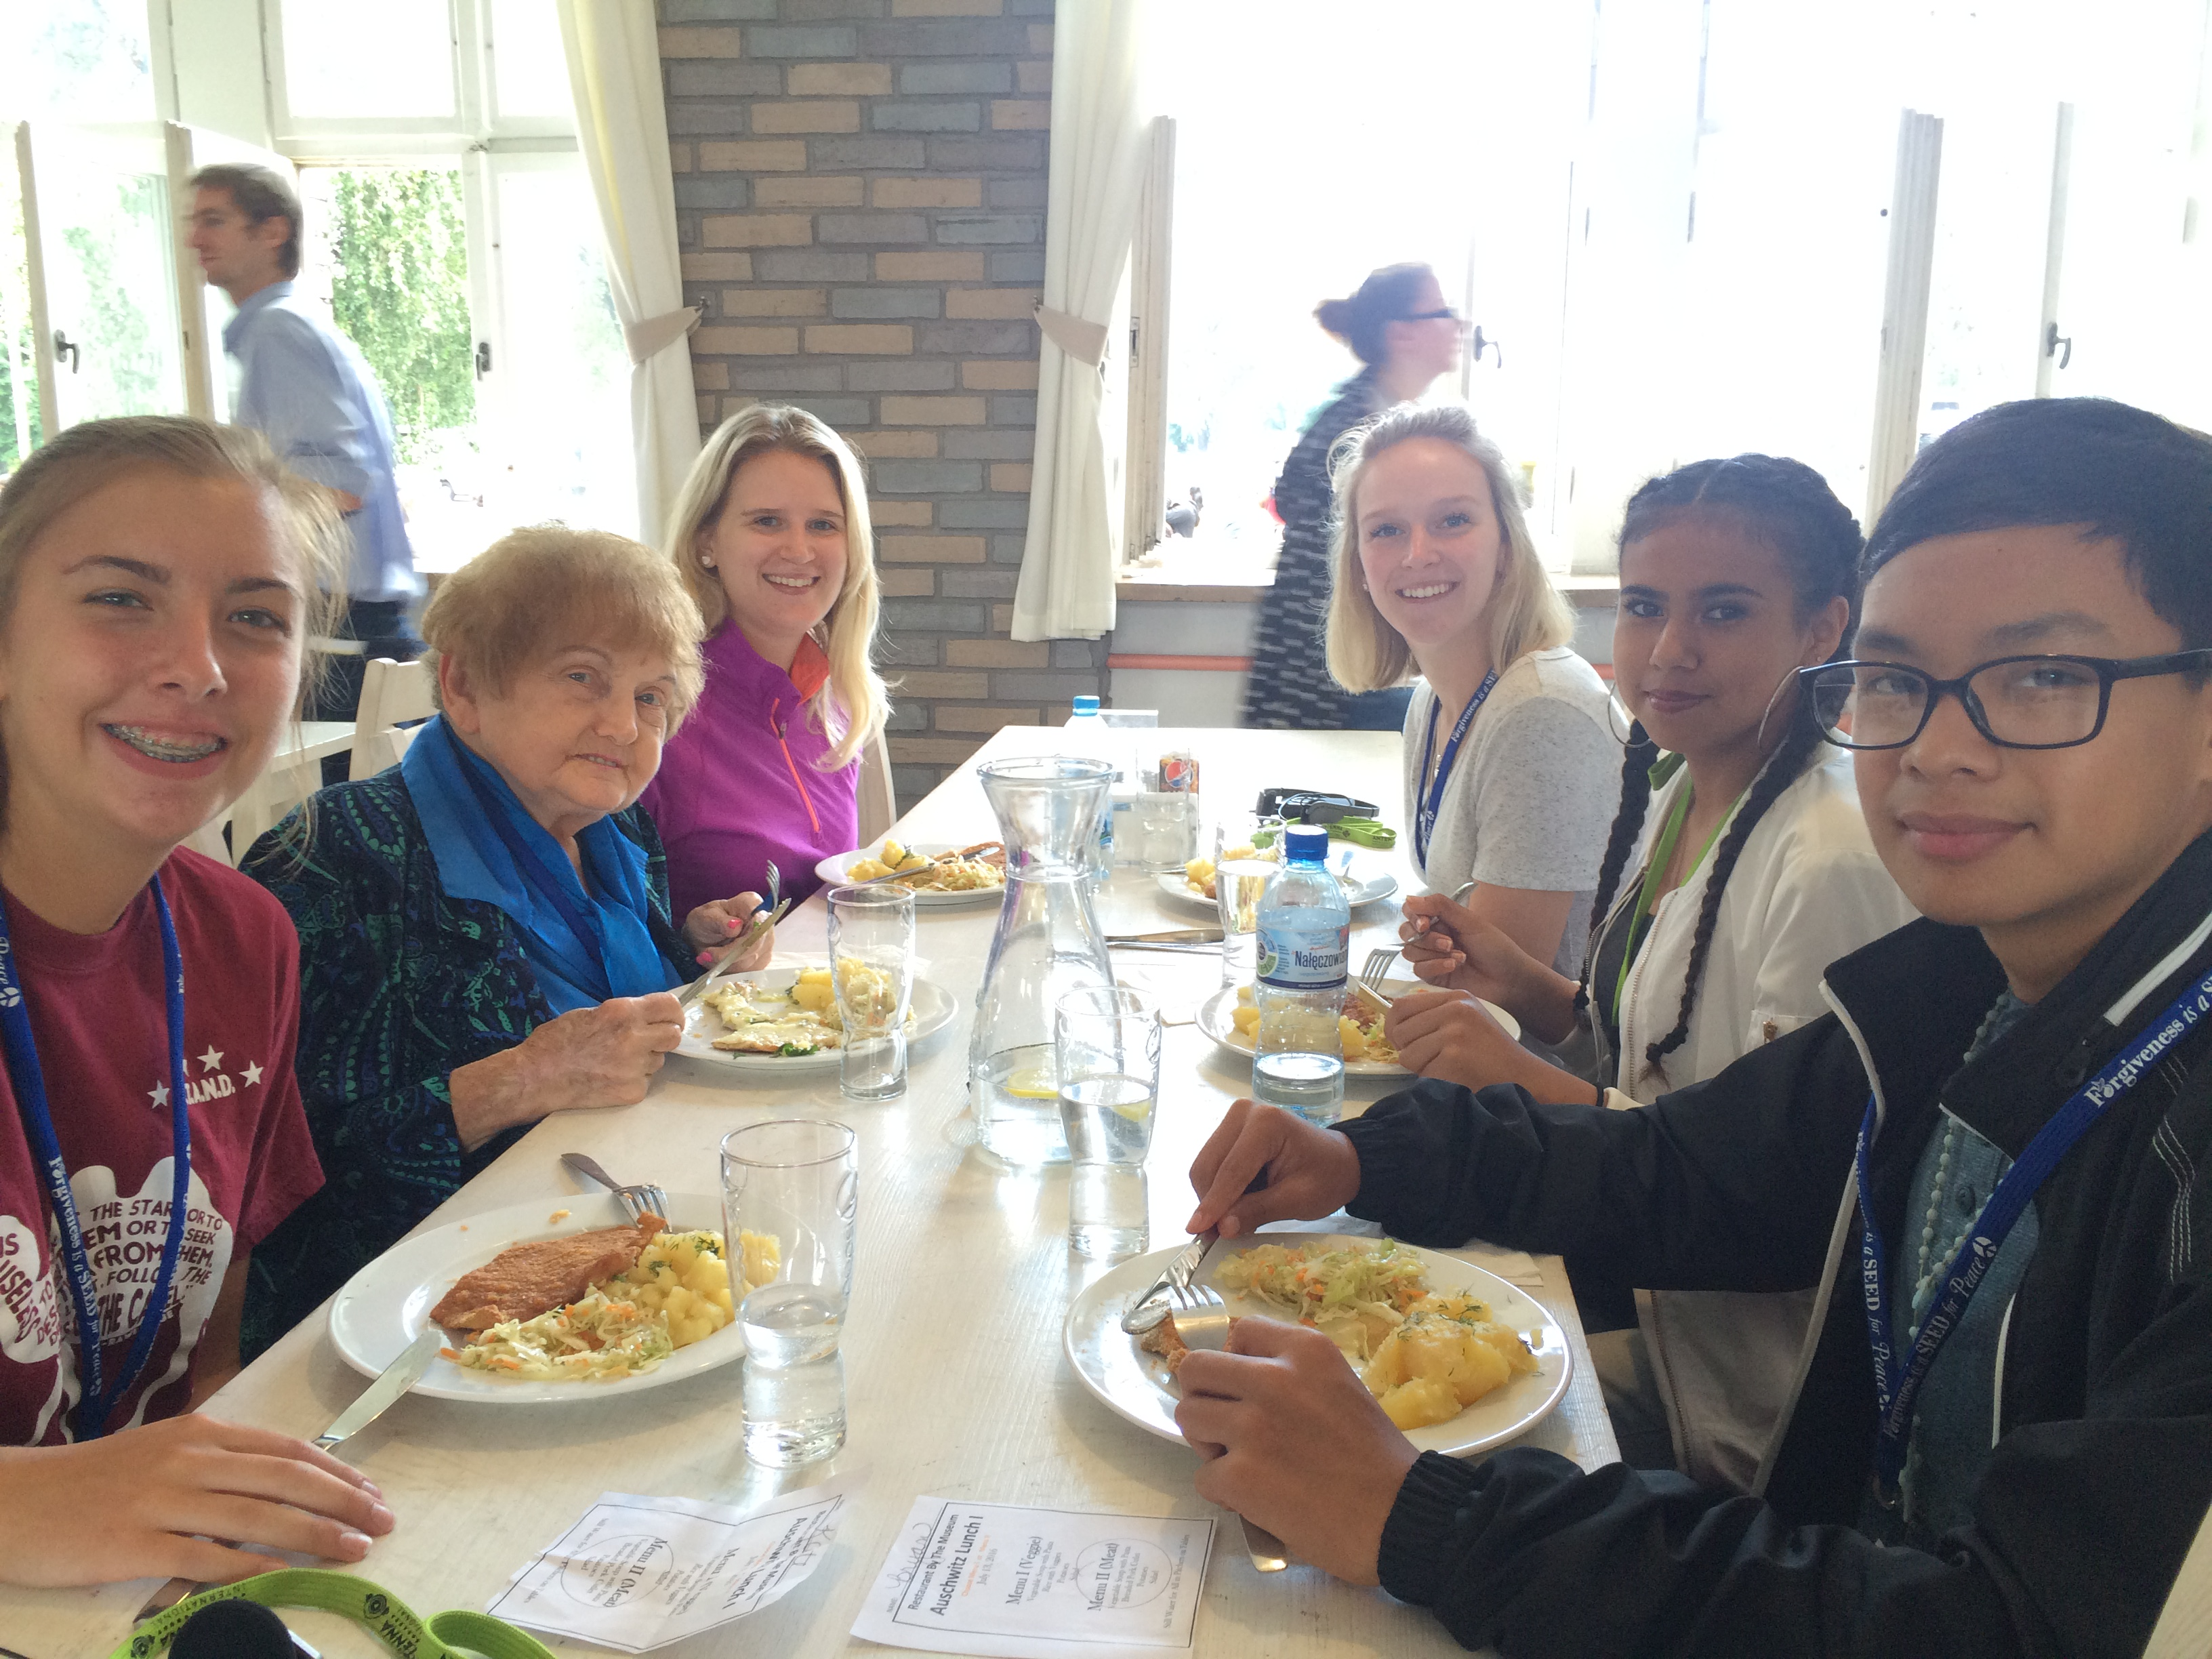 Eva and Participants Eating Lunch